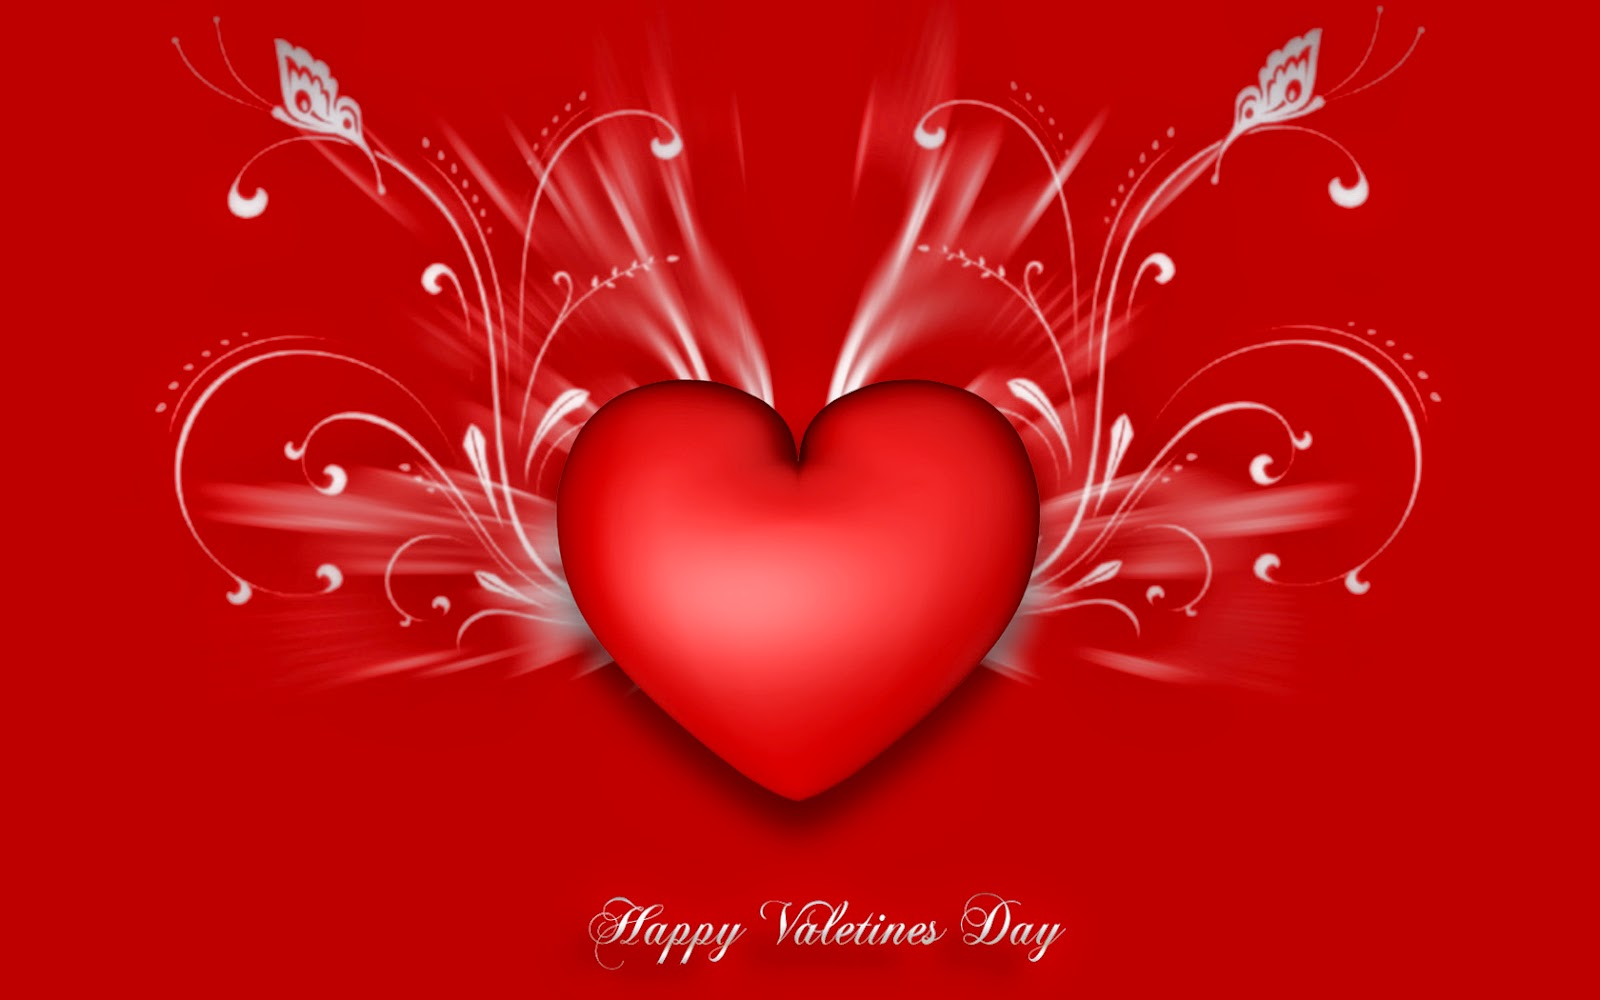 Happy valentines day 2016 greeting cards worshipping true love facts and symbols of true love buycottarizona